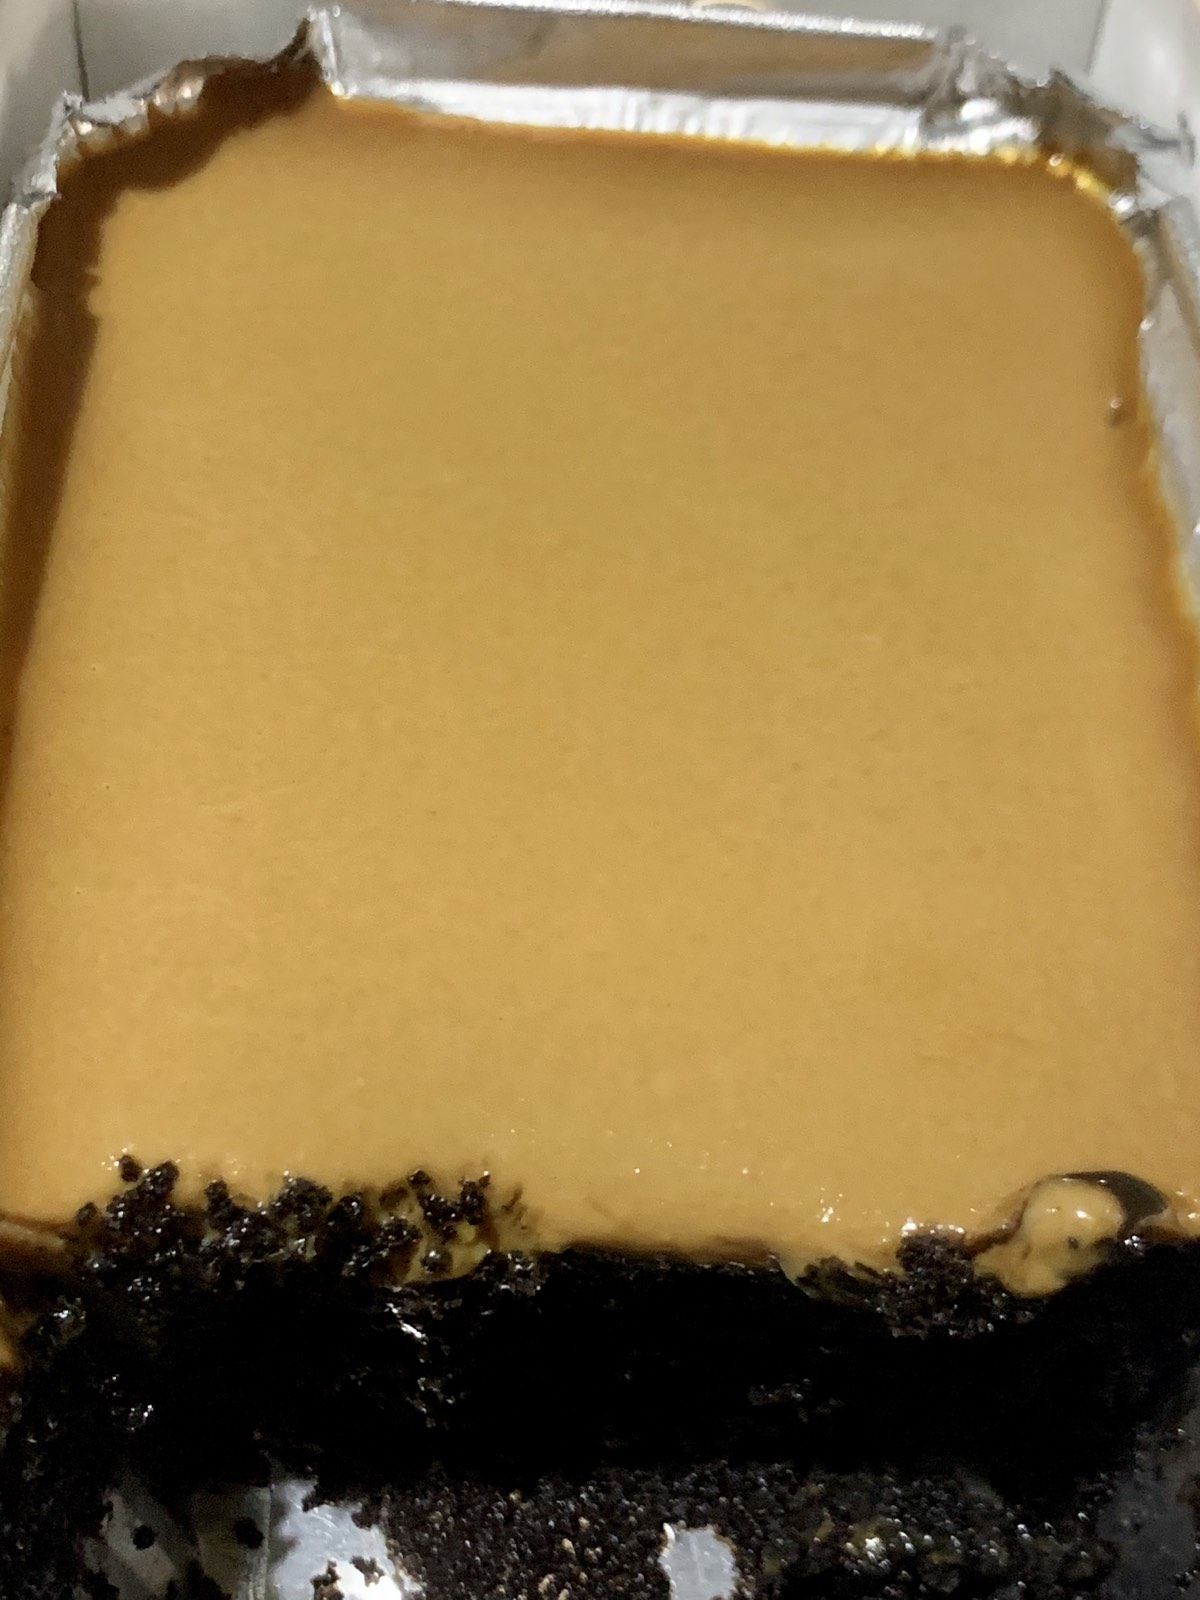 Big Al's chocolate cake with caramel topping.